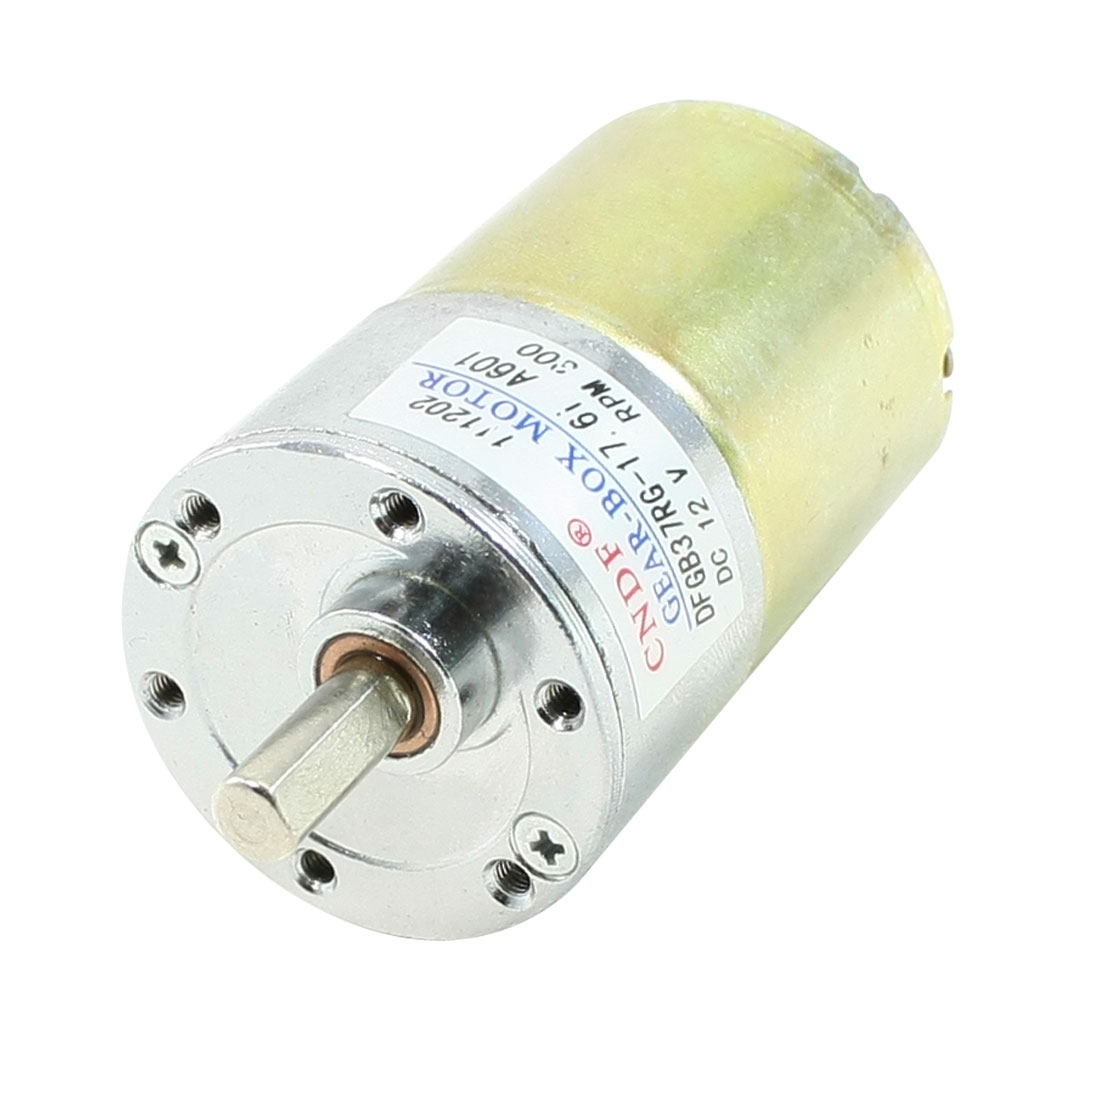 DC 12V 300RPM 37mm Dia Electric Speed Reducing Mini Gearbox Motor